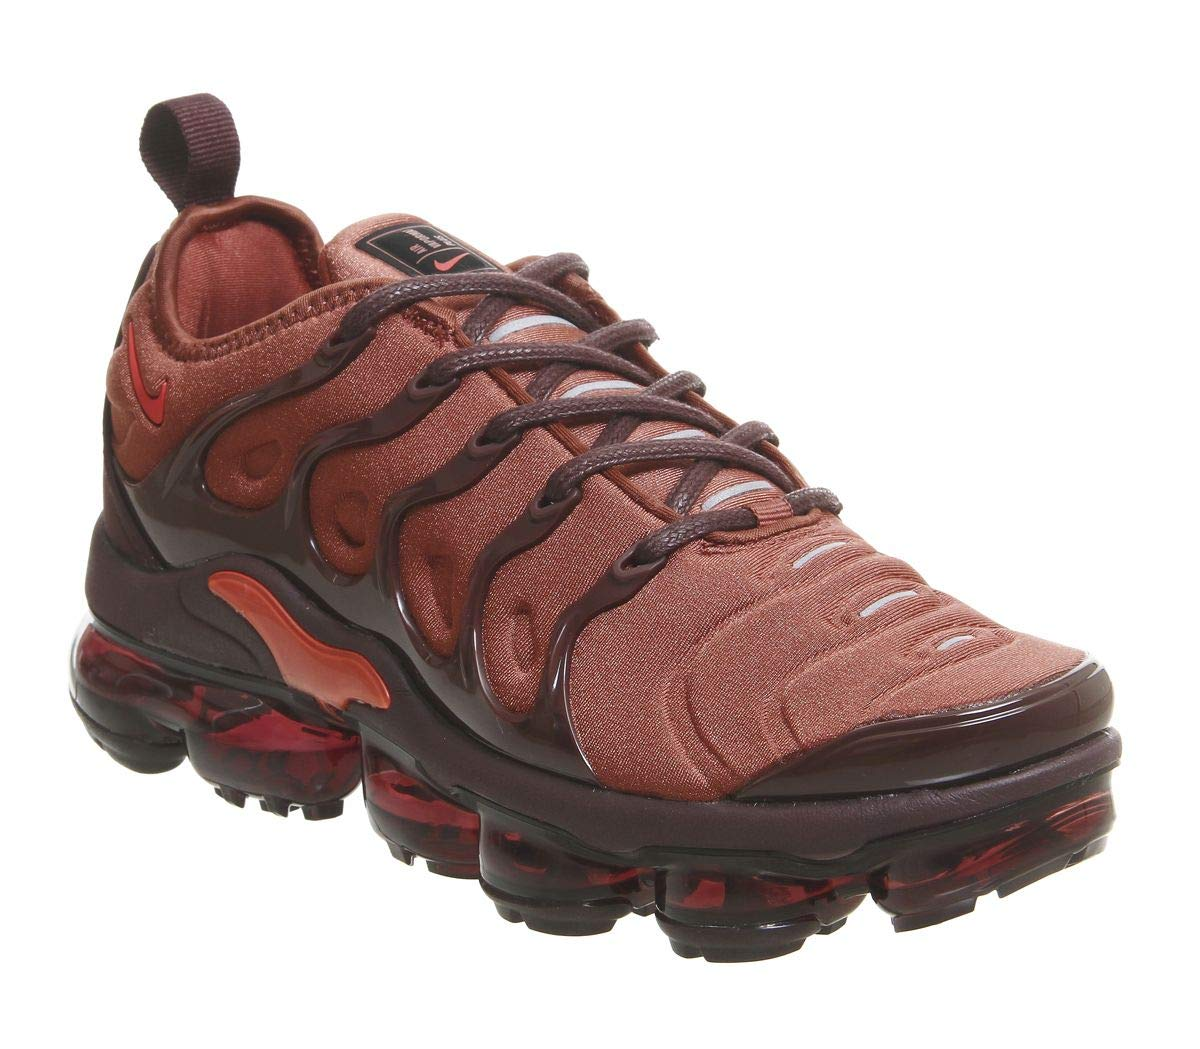 new styles ec70e a34d7 Nike Womens Air Vapormax Plus Running Trainers AO4550 Sneakers Shoes (UK  6.5 US 9 EU 40.5, Burnt Orange Habanero red 201)